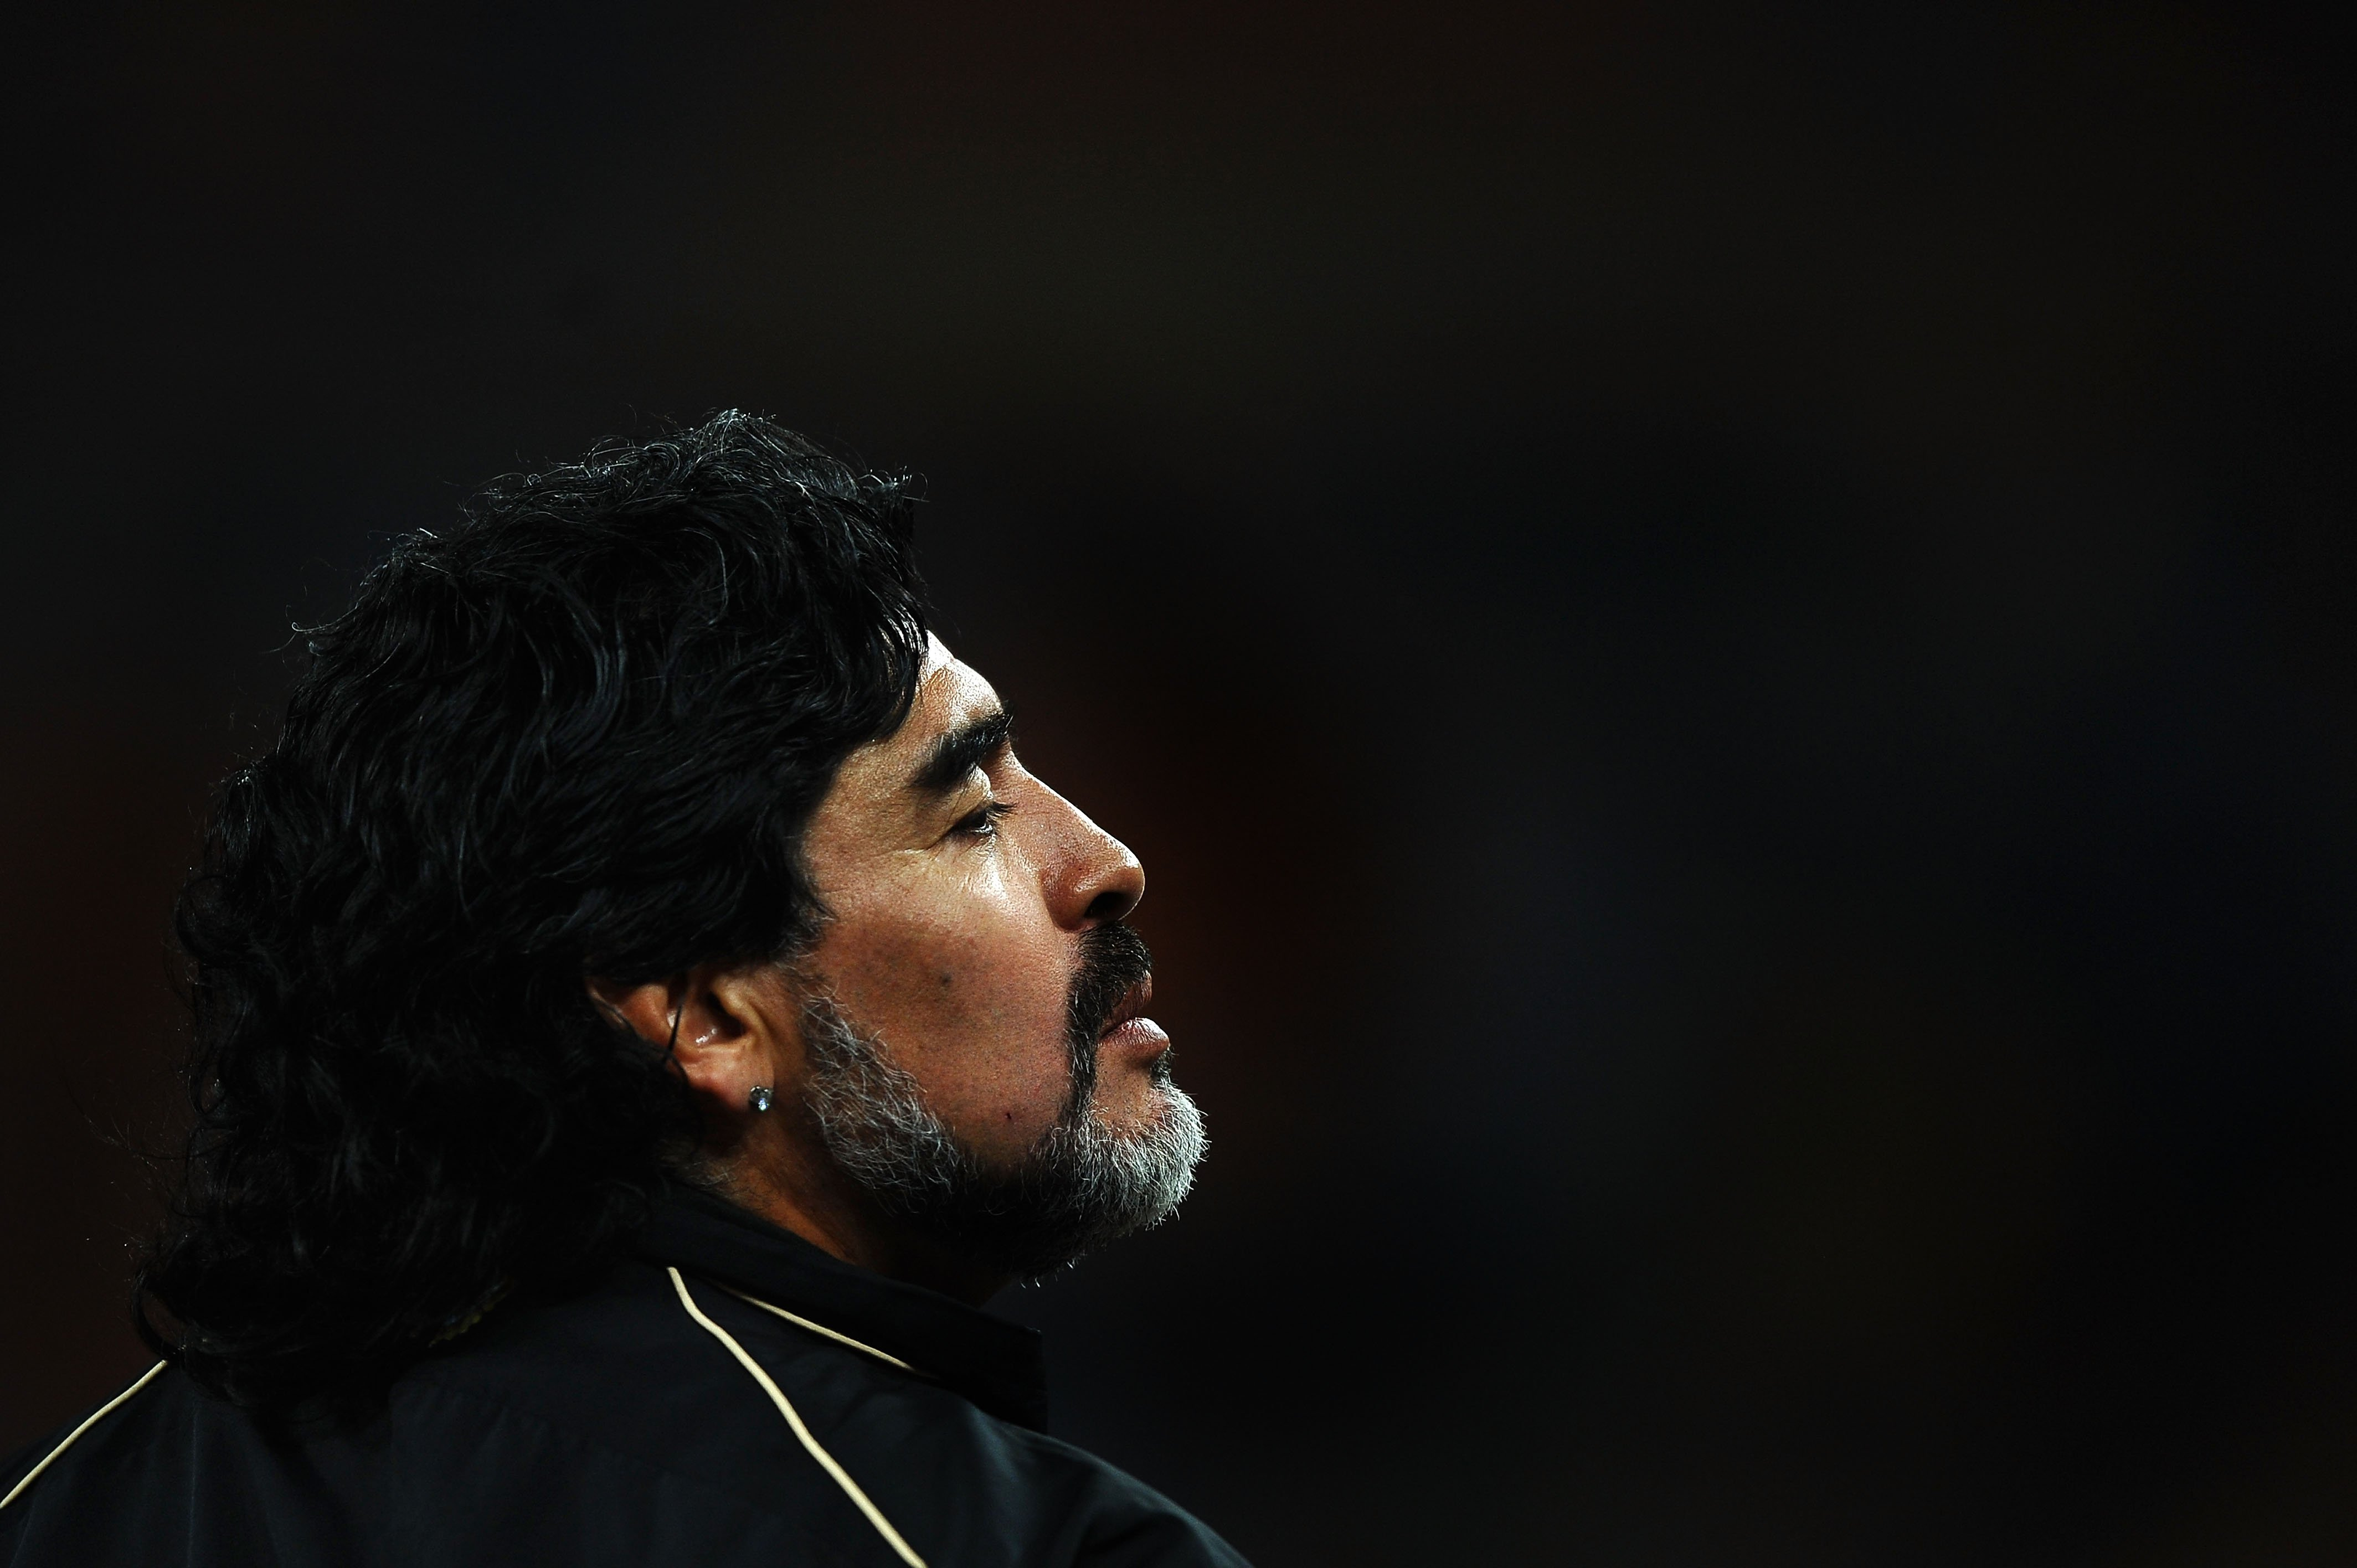 Diego Maradona at the 2010 FIFA World Cup South Africa Round of Sixteen match between Argentina and Mexico at Soccer City Stadium on June 27, 2010 in Johannesburg, South Africa. | Photo by Laurence Griffiths/Getty Images